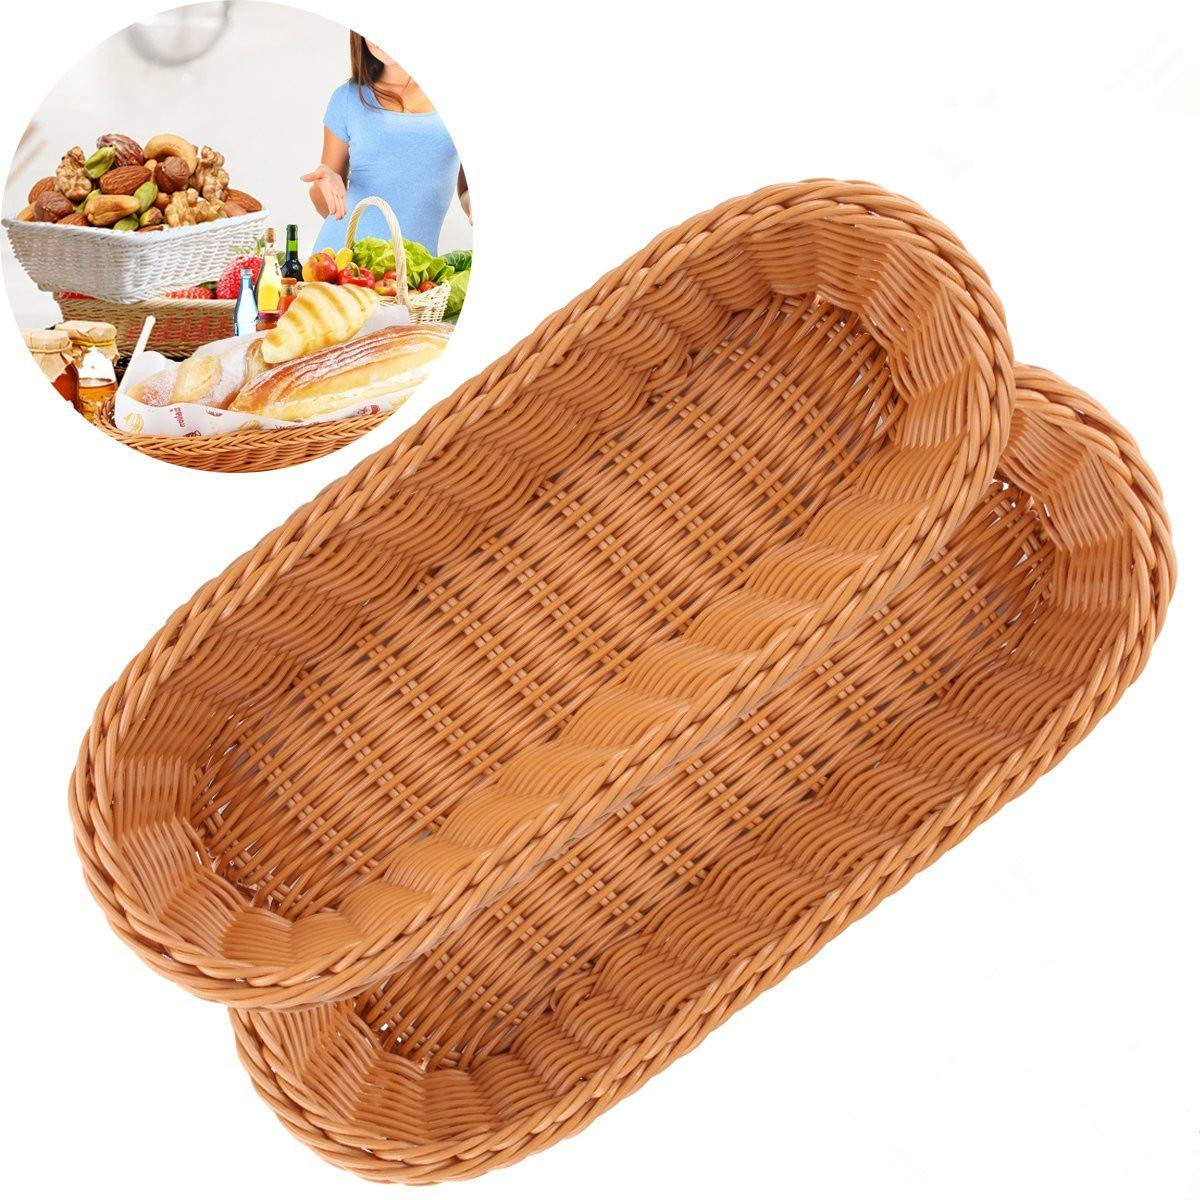 Bread Basket,2 Poly Wicker Food Serving Baskets Tray for Restaurant/Kitchen/Coffee Table Display Decoration Fruit Snacks Container Mcisyness